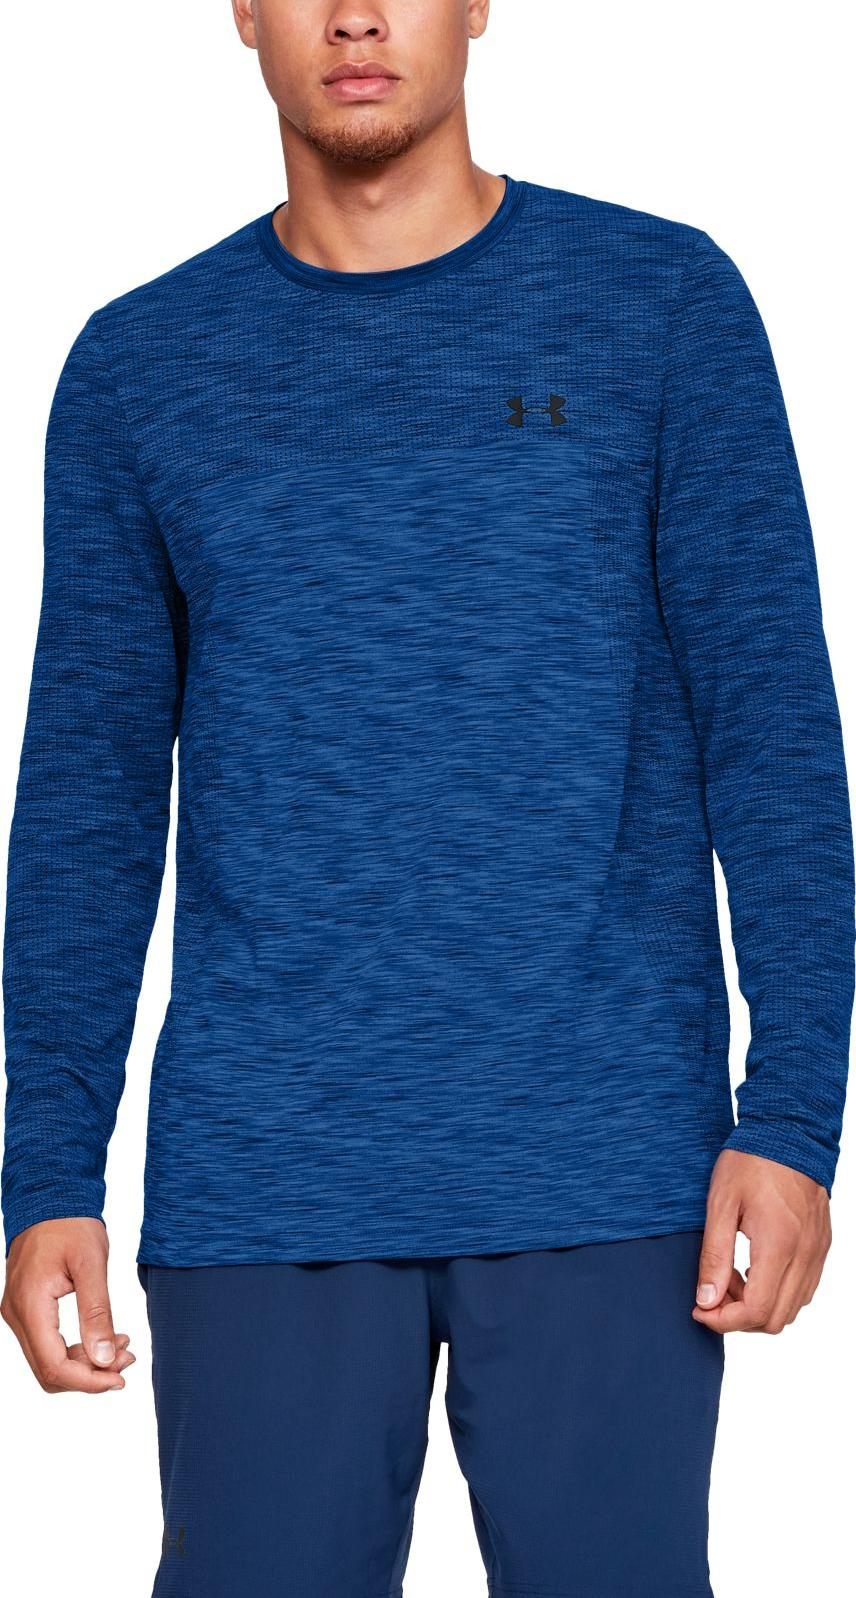 Long-sleeve T-shirt Under Armour Vanish Seamless LS